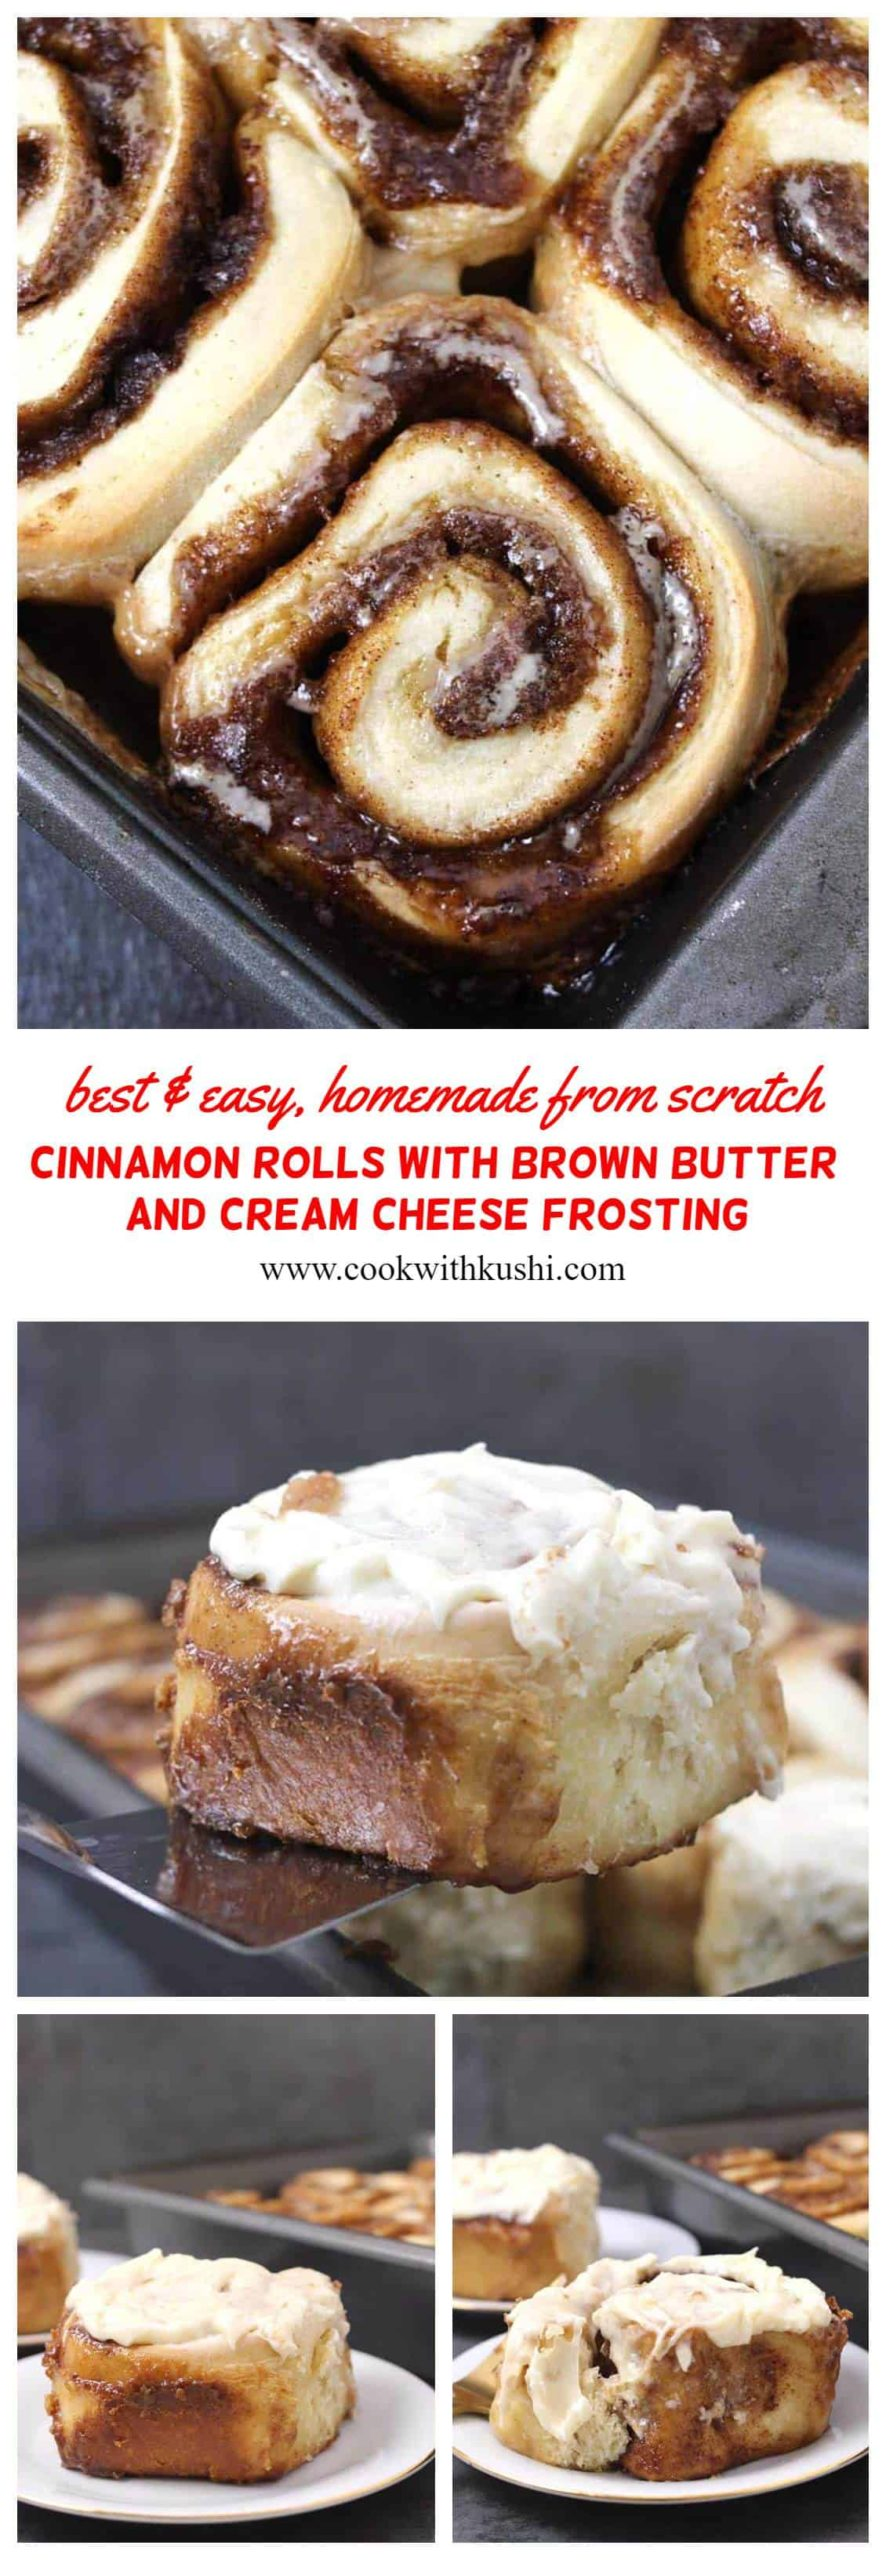 These homemade brown butter cinnamon rolls are rich, soft and gooey, the best and easy sweet rolls you will make at home this holiday season. The nutty and toasted flavor from brown butter enhances the taste of these baked rolls. #christmasbreakfast #holidaybreakfast #cinnamonrolls #danish #cinnamonswirl #cinnamonsnail #stickybuns #creamcheesefrosting #yeastrolls #cinnamonrolls